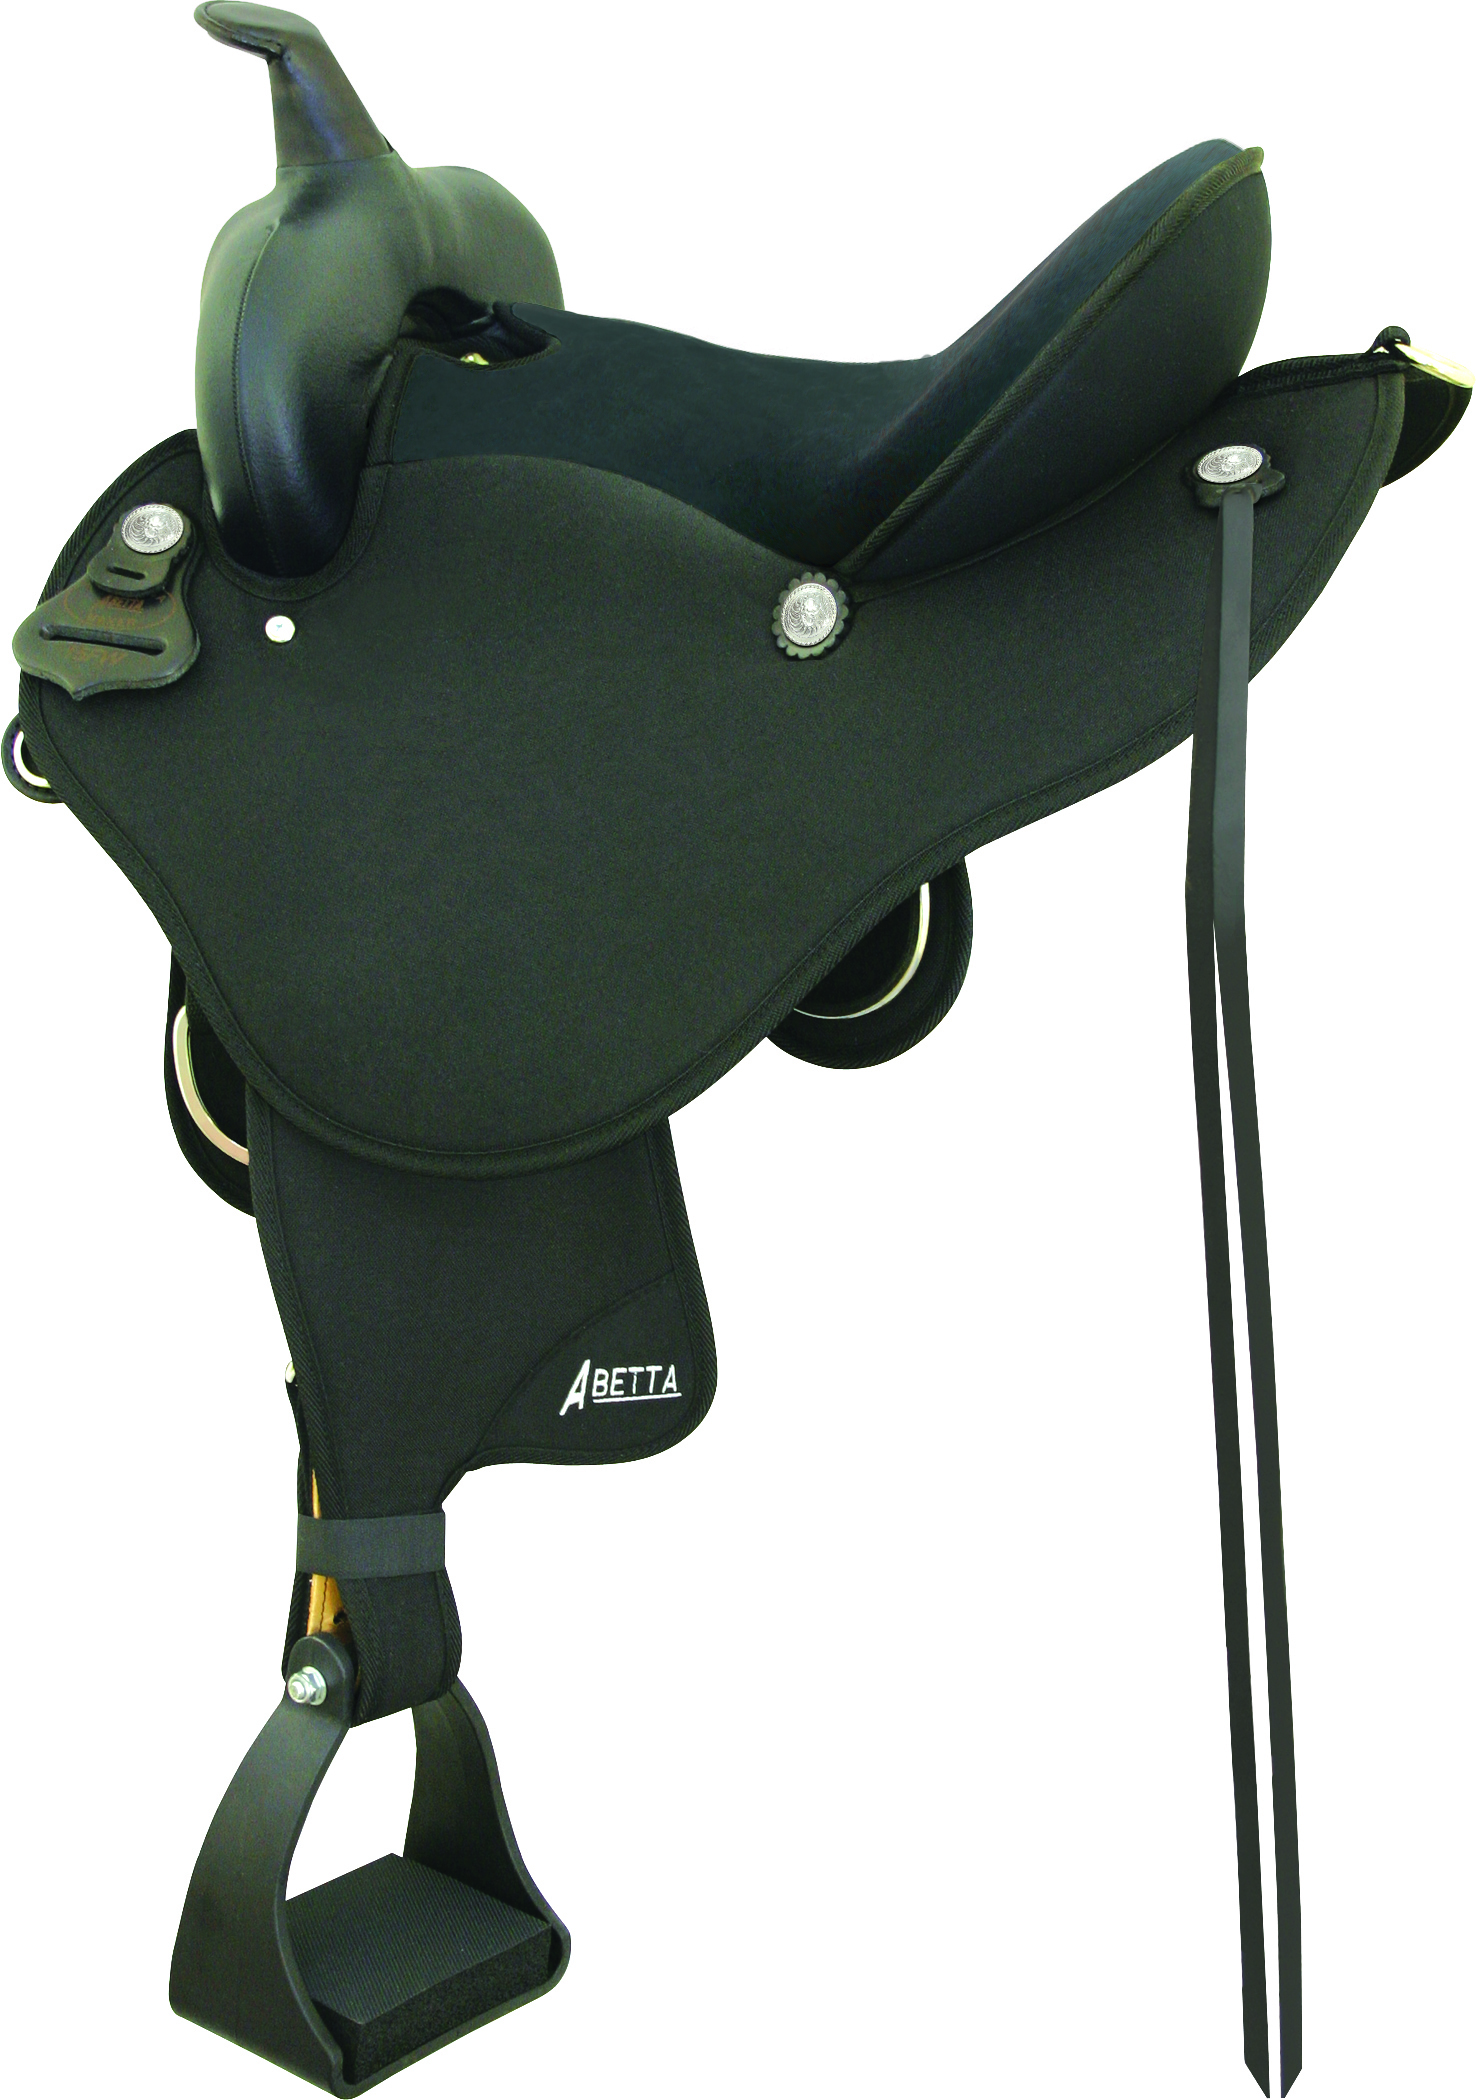 Abetta Stealth With Super Cushion Seat